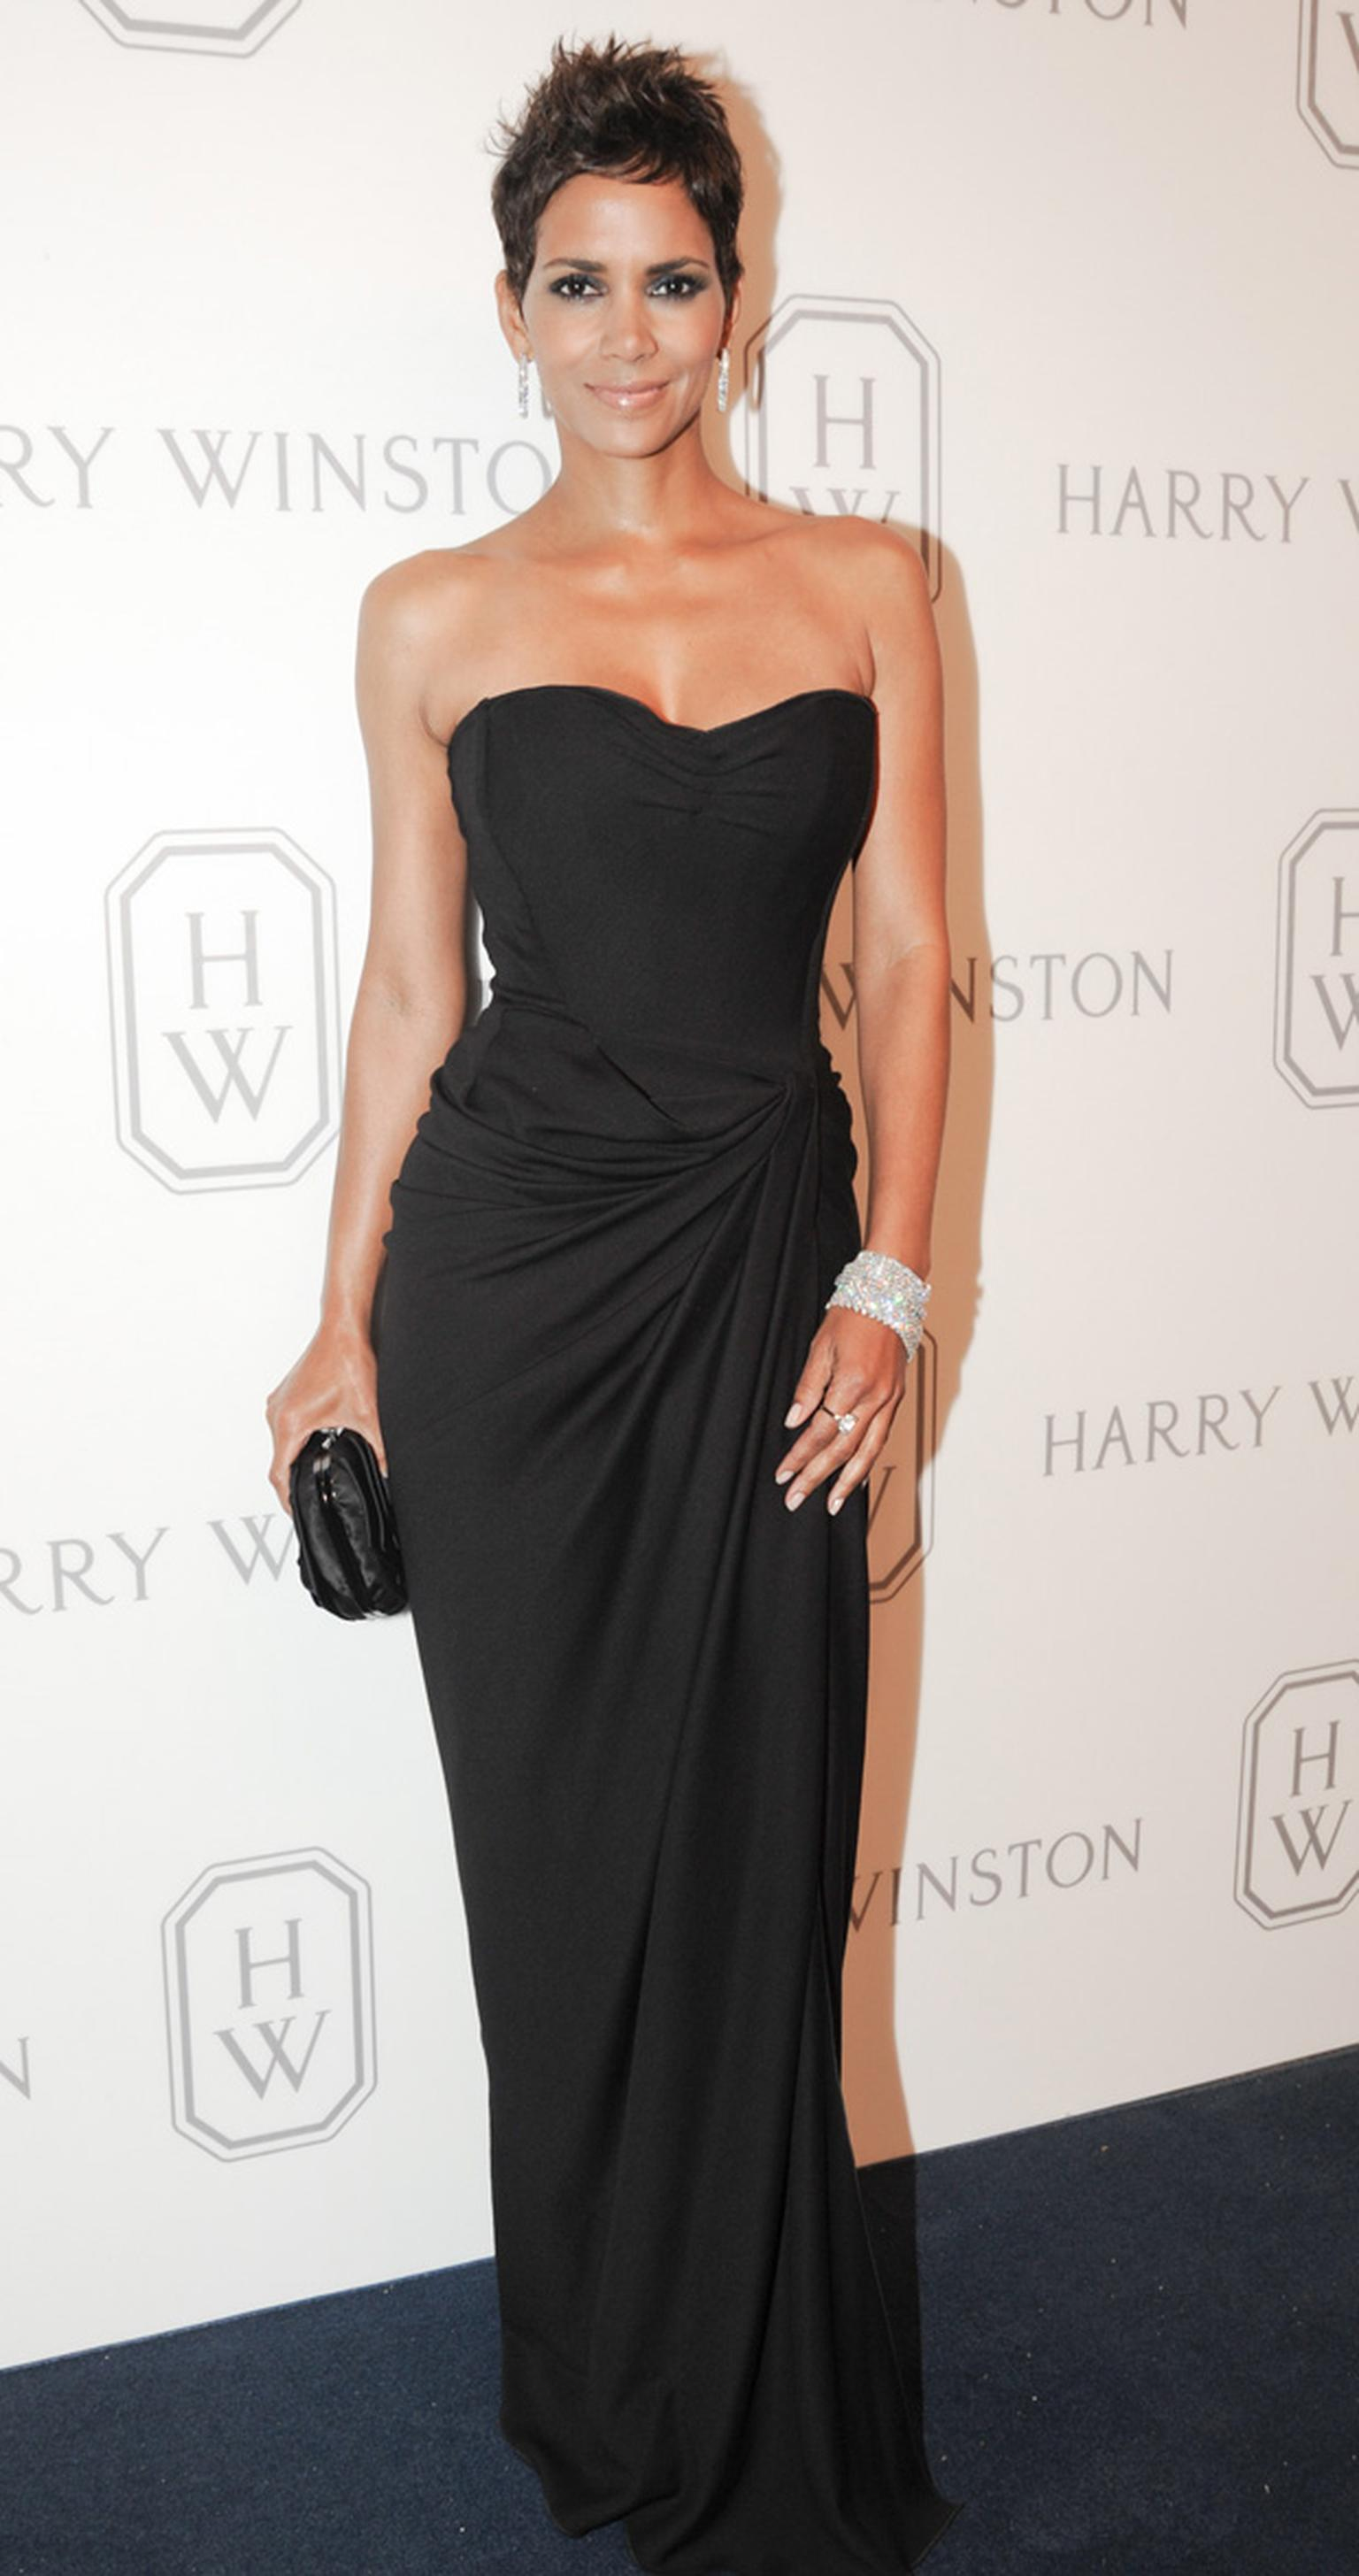 Halle Berry wearing Harry Winston at the Court of Jewels in New York